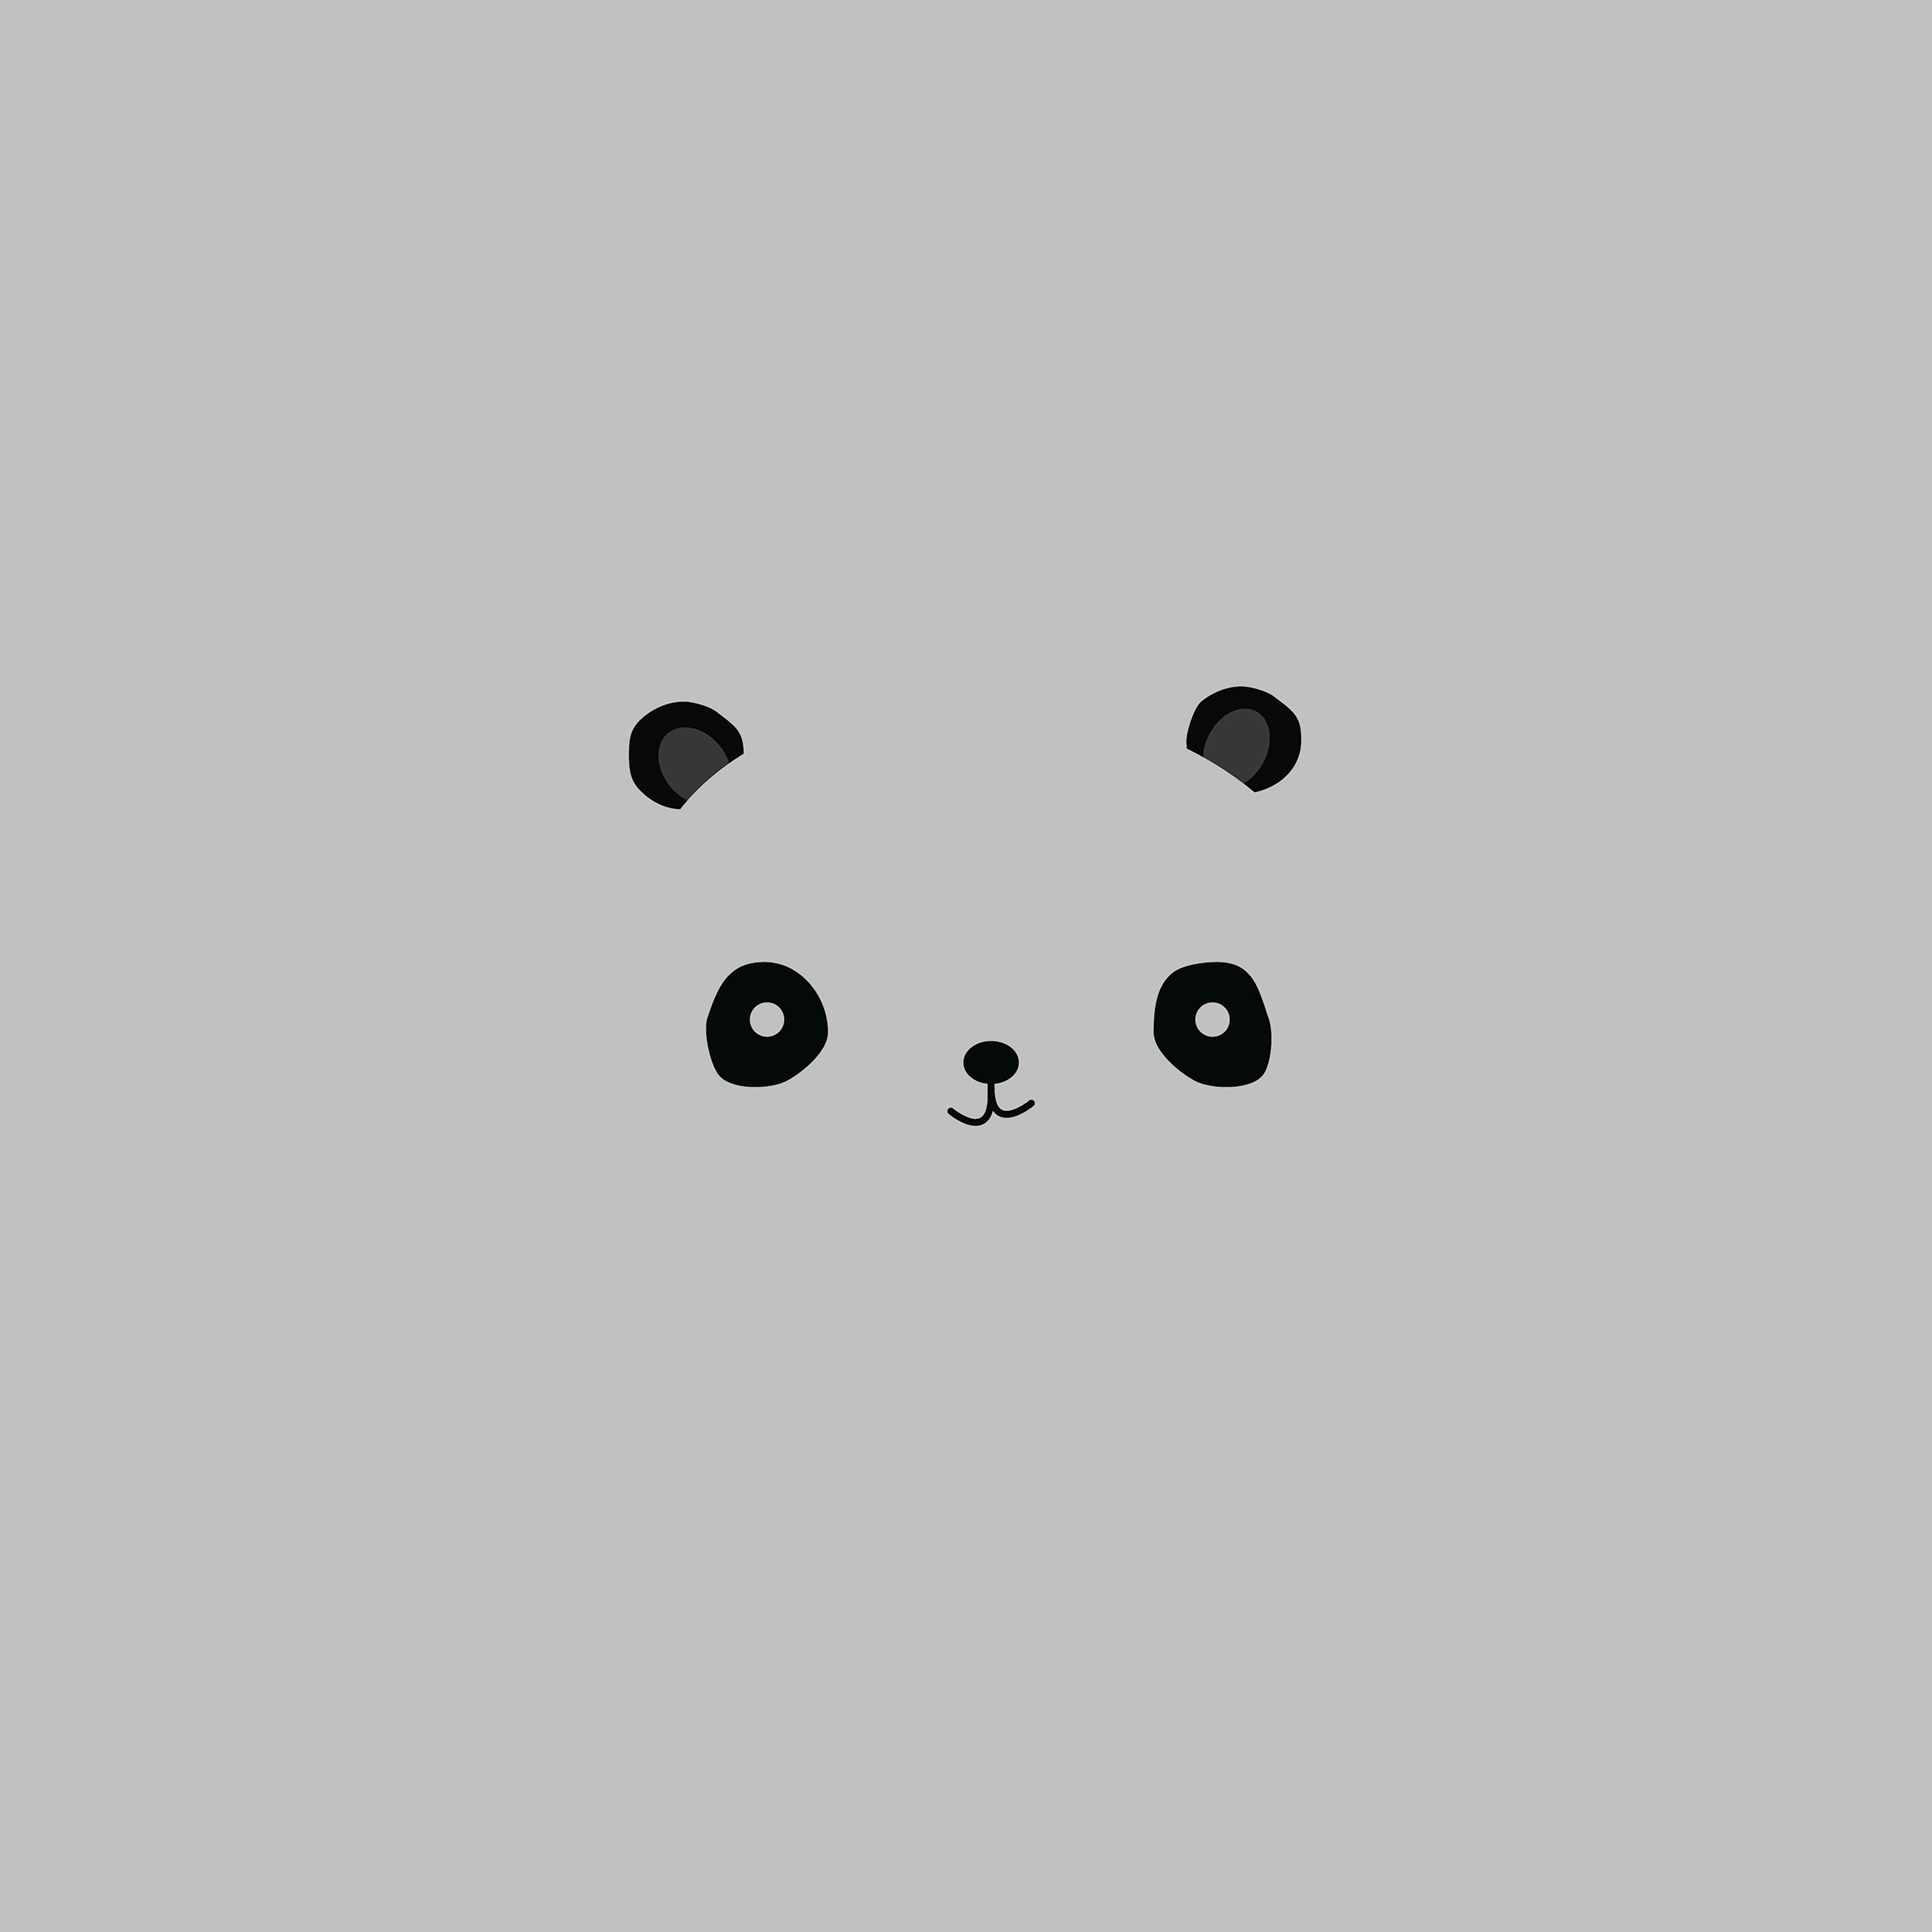 Download Wallpaper Macbook Panda - papers  Trends_597948.jpg